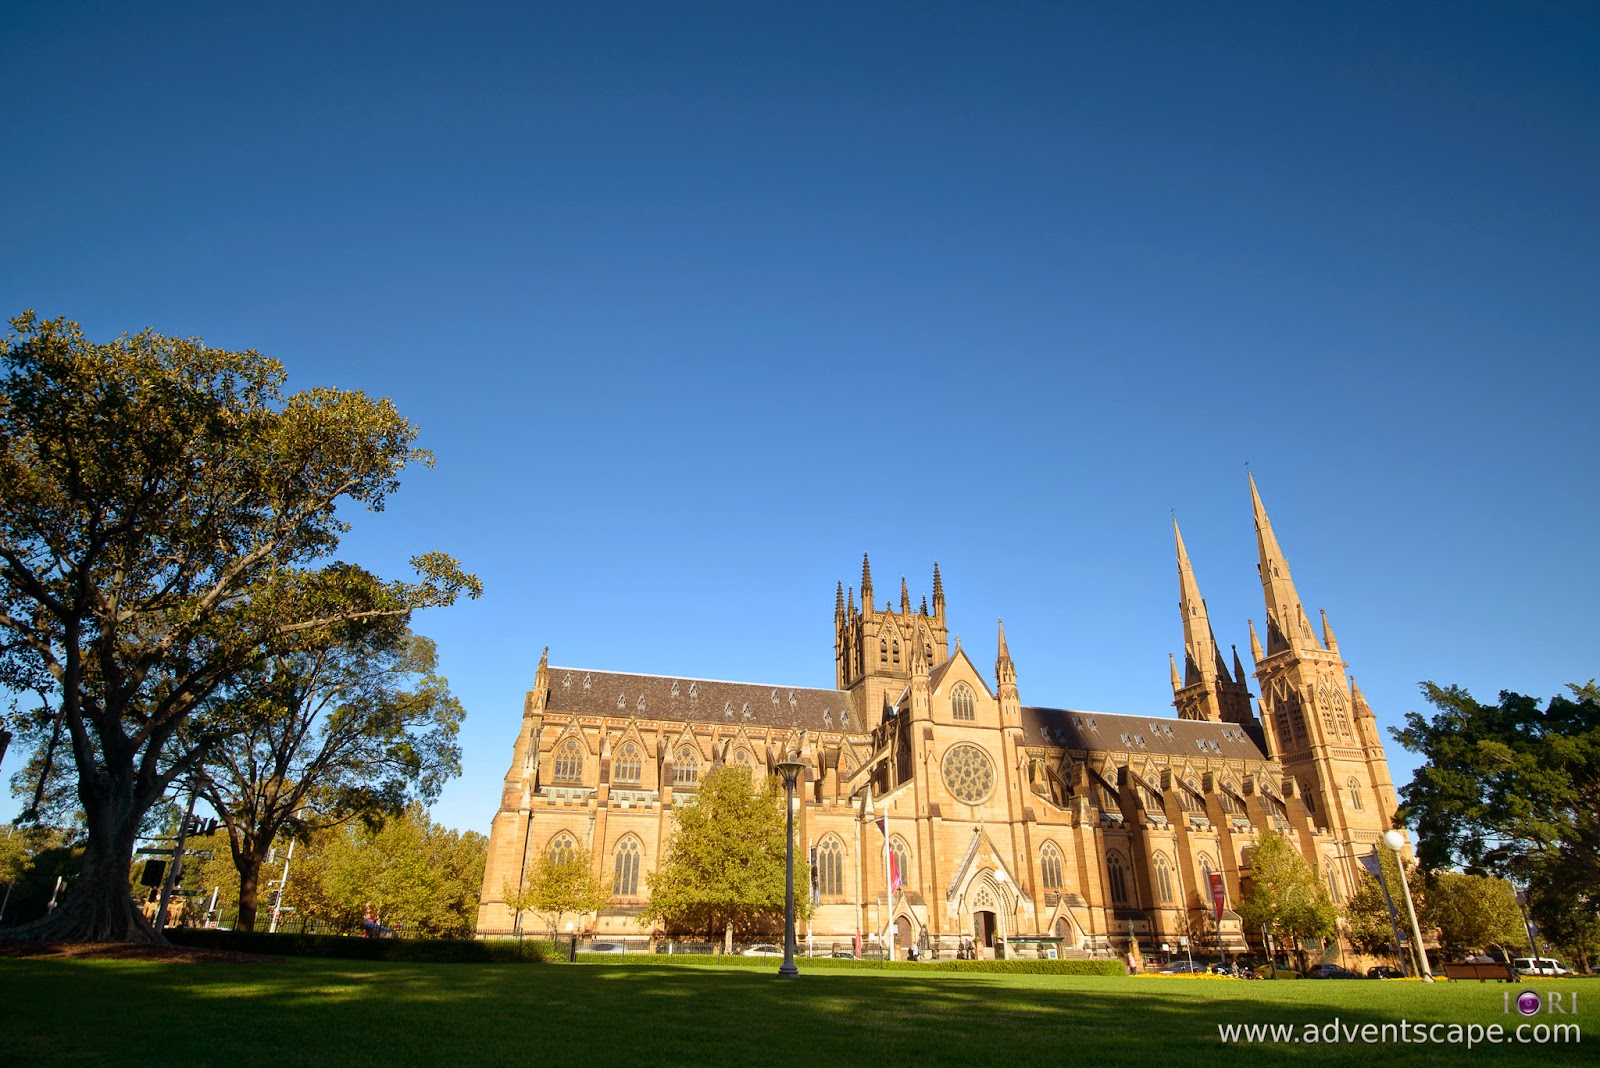 Philip Avellana, Australian Landscape Photographer, NSW, New South Wales, Sydney, Australia, St Mary's Cathedral, church, comparison, review, glass vs resin, filters, Lee Filters, soft ND, ND, neutral density, graduated neutral density, GND, grad nd, proglass, 0.9, 3 stops